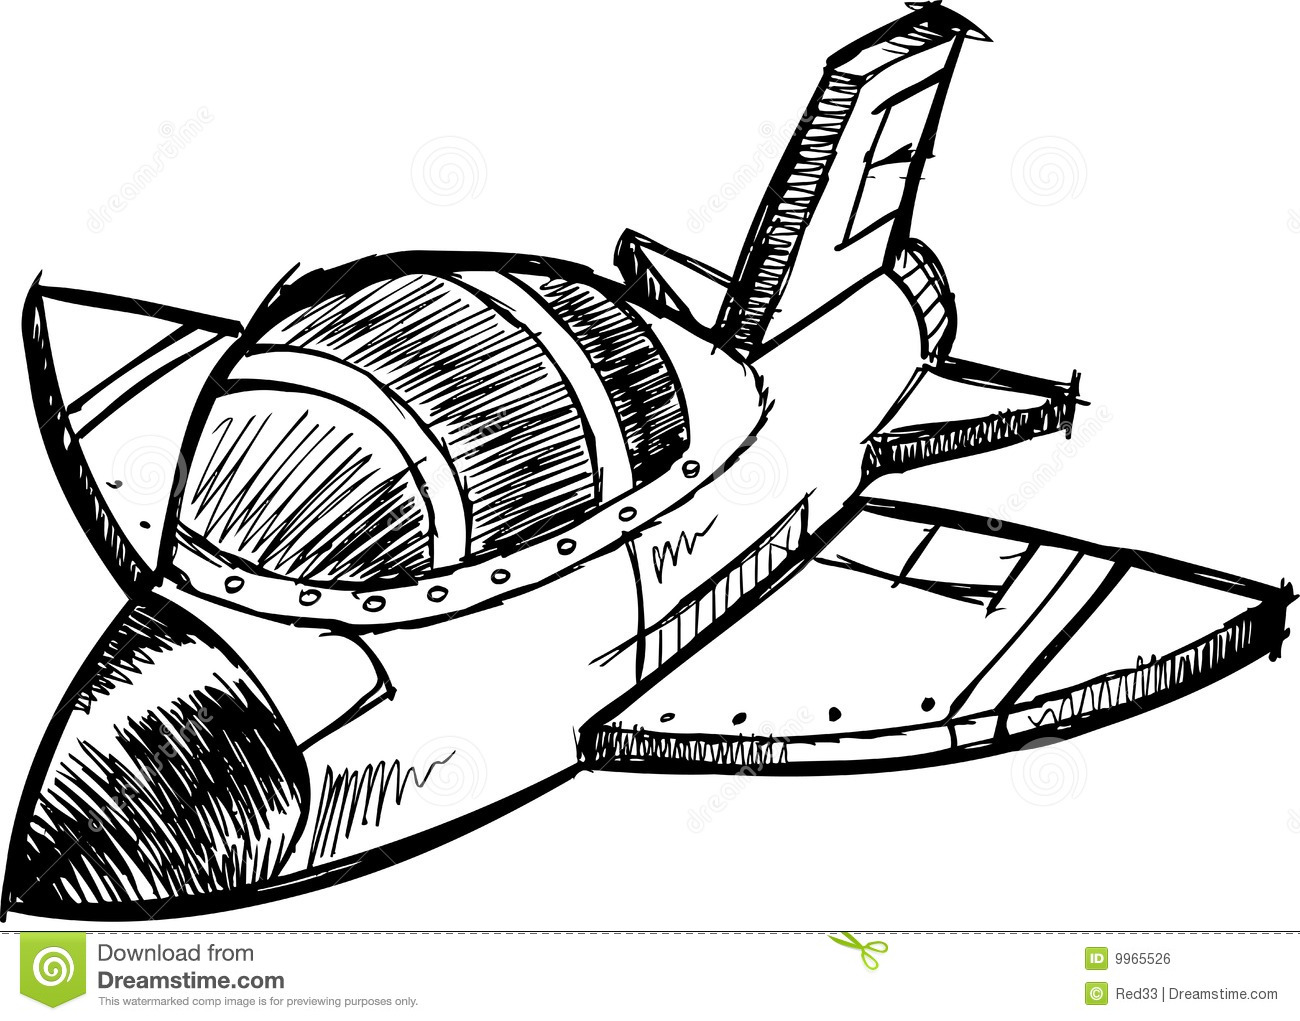 Sketchy Jet Vector Illustration Royalty Free Stock Image